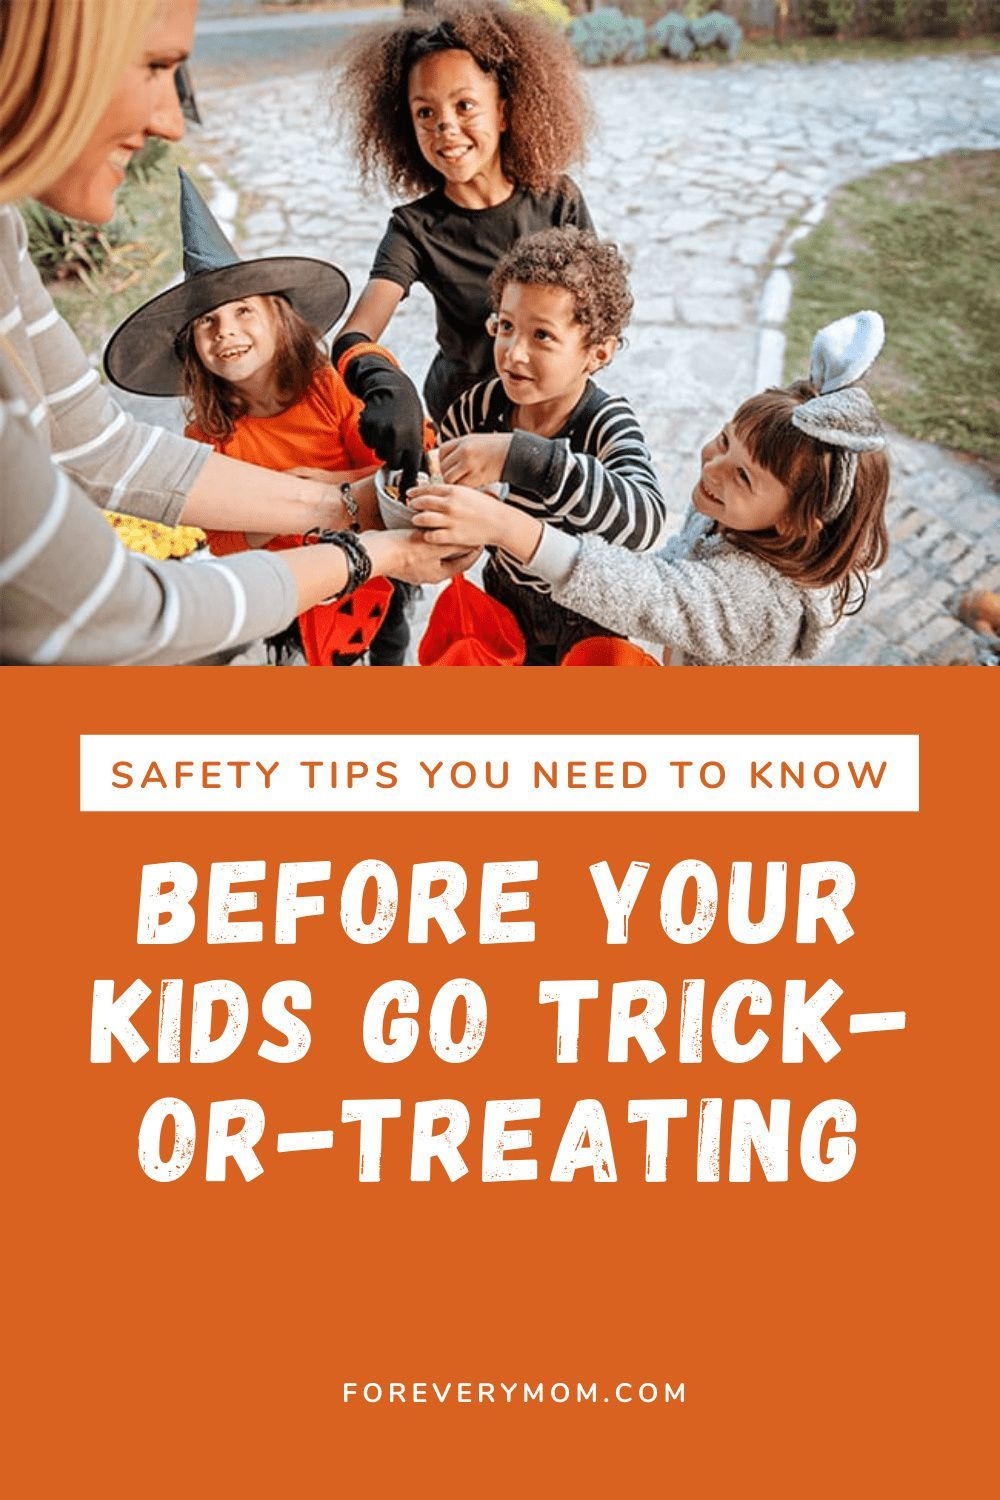 Safety Tips You Need to Know Before Your Kids Go Trickor